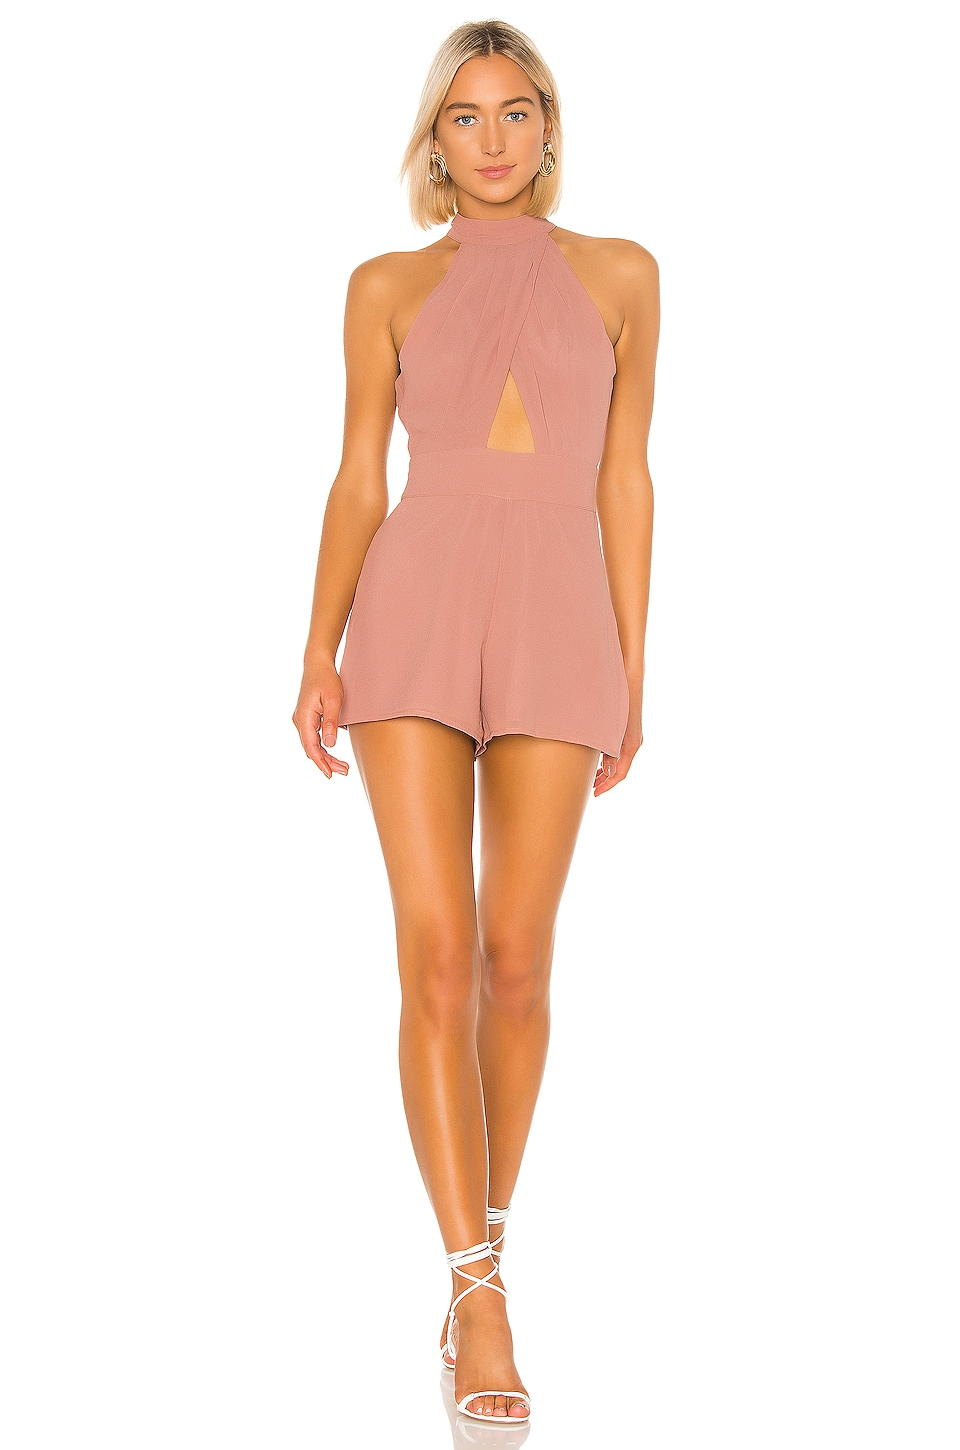 House of Harlow 1960 X REVOLVE Jessa Romper in Dusty Mauve